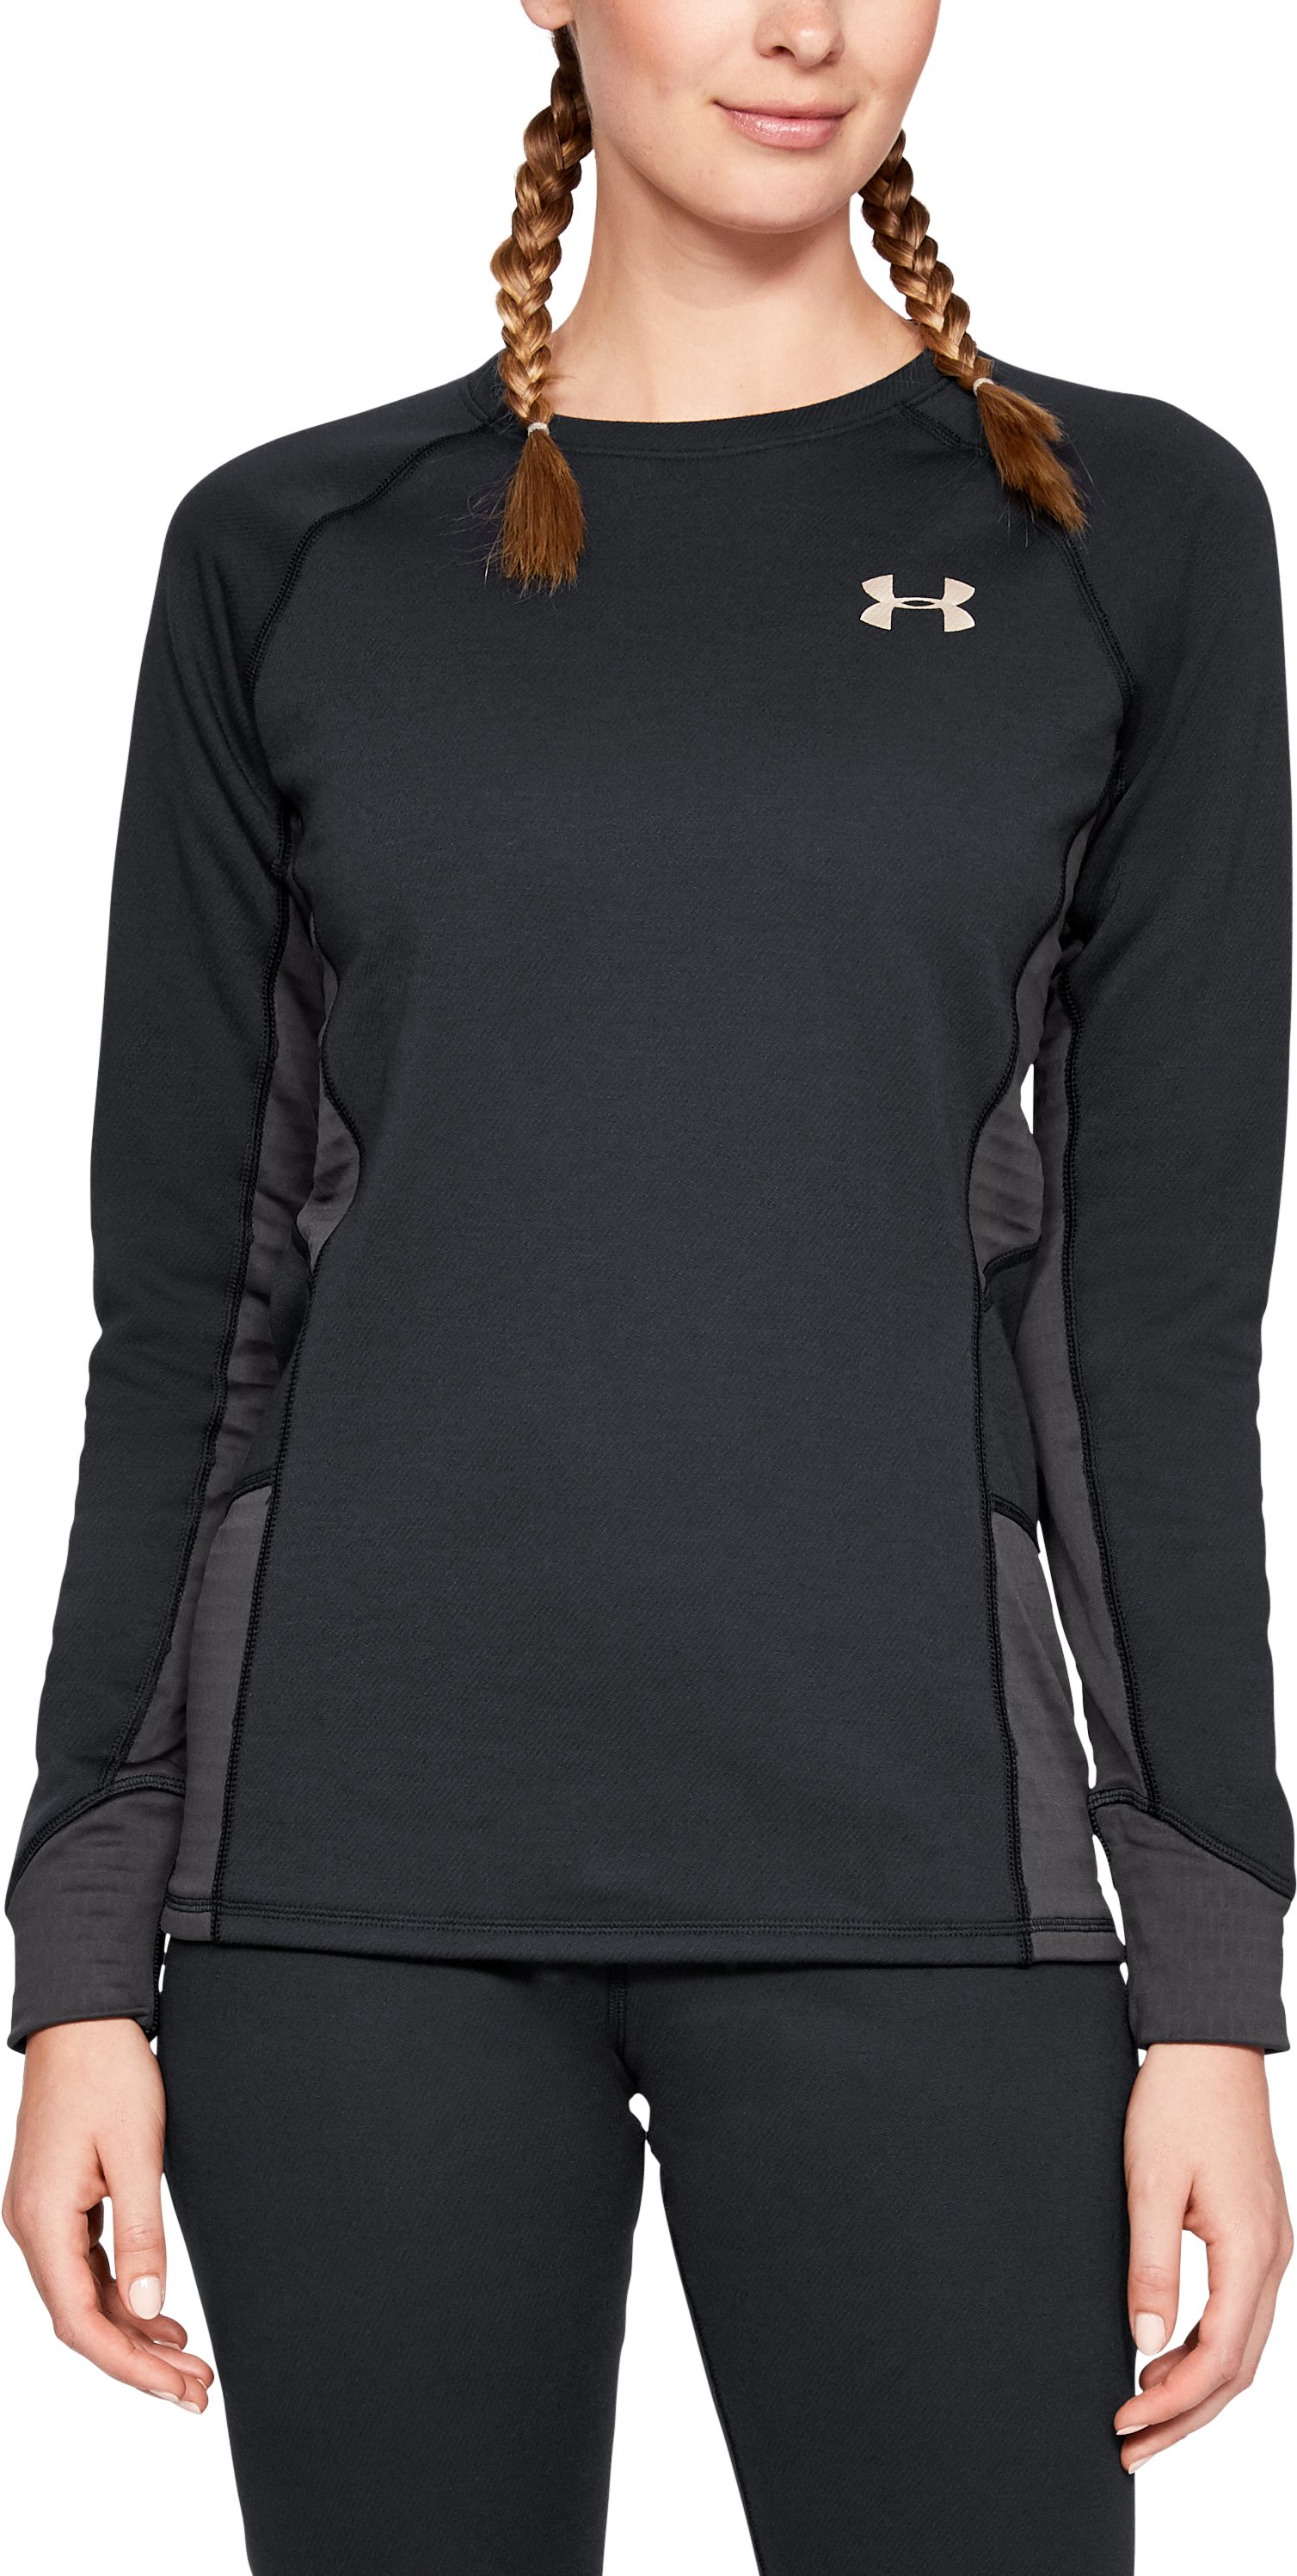 Extreme Twill Base Top, Black , zoomed